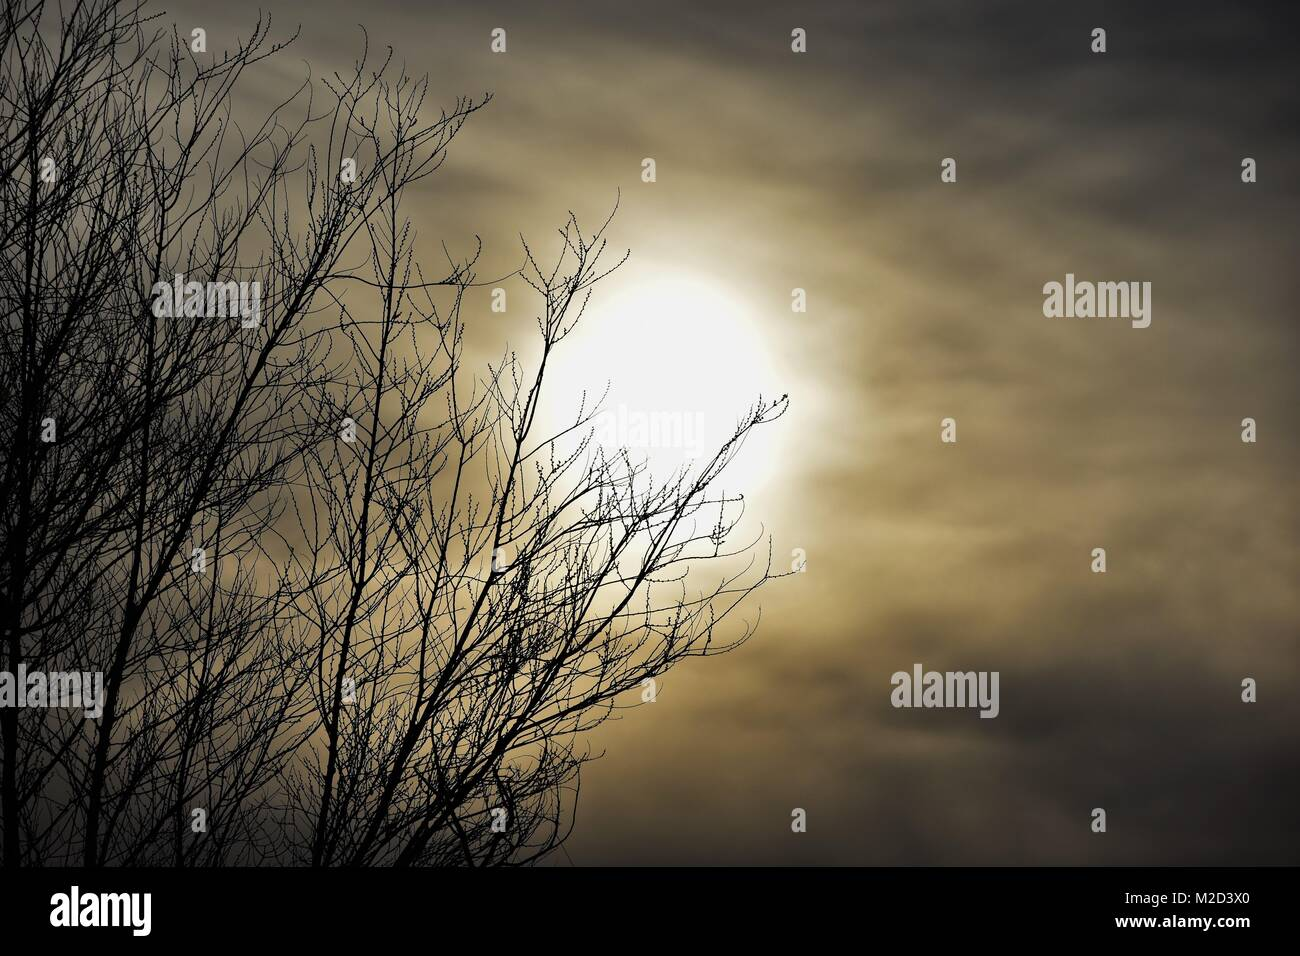 Eerie Sunset With Leafless Tree, Cloudy Sky - Stock Image